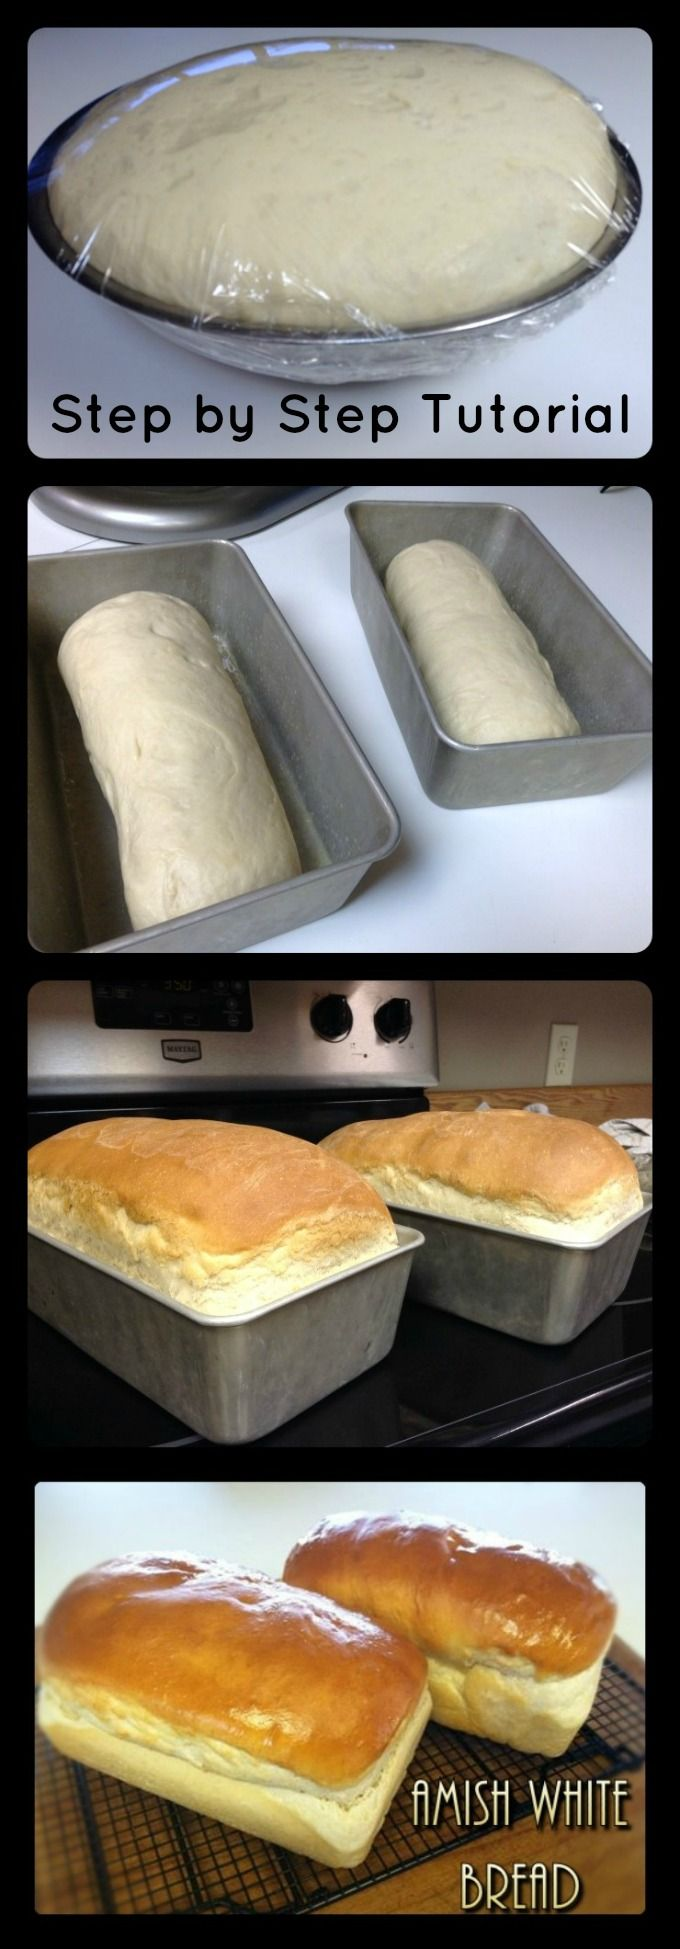 Amish White Bread with Step by Step photo tutorial. 6 simple ingredients to make this homemade bread! No bread machine required!